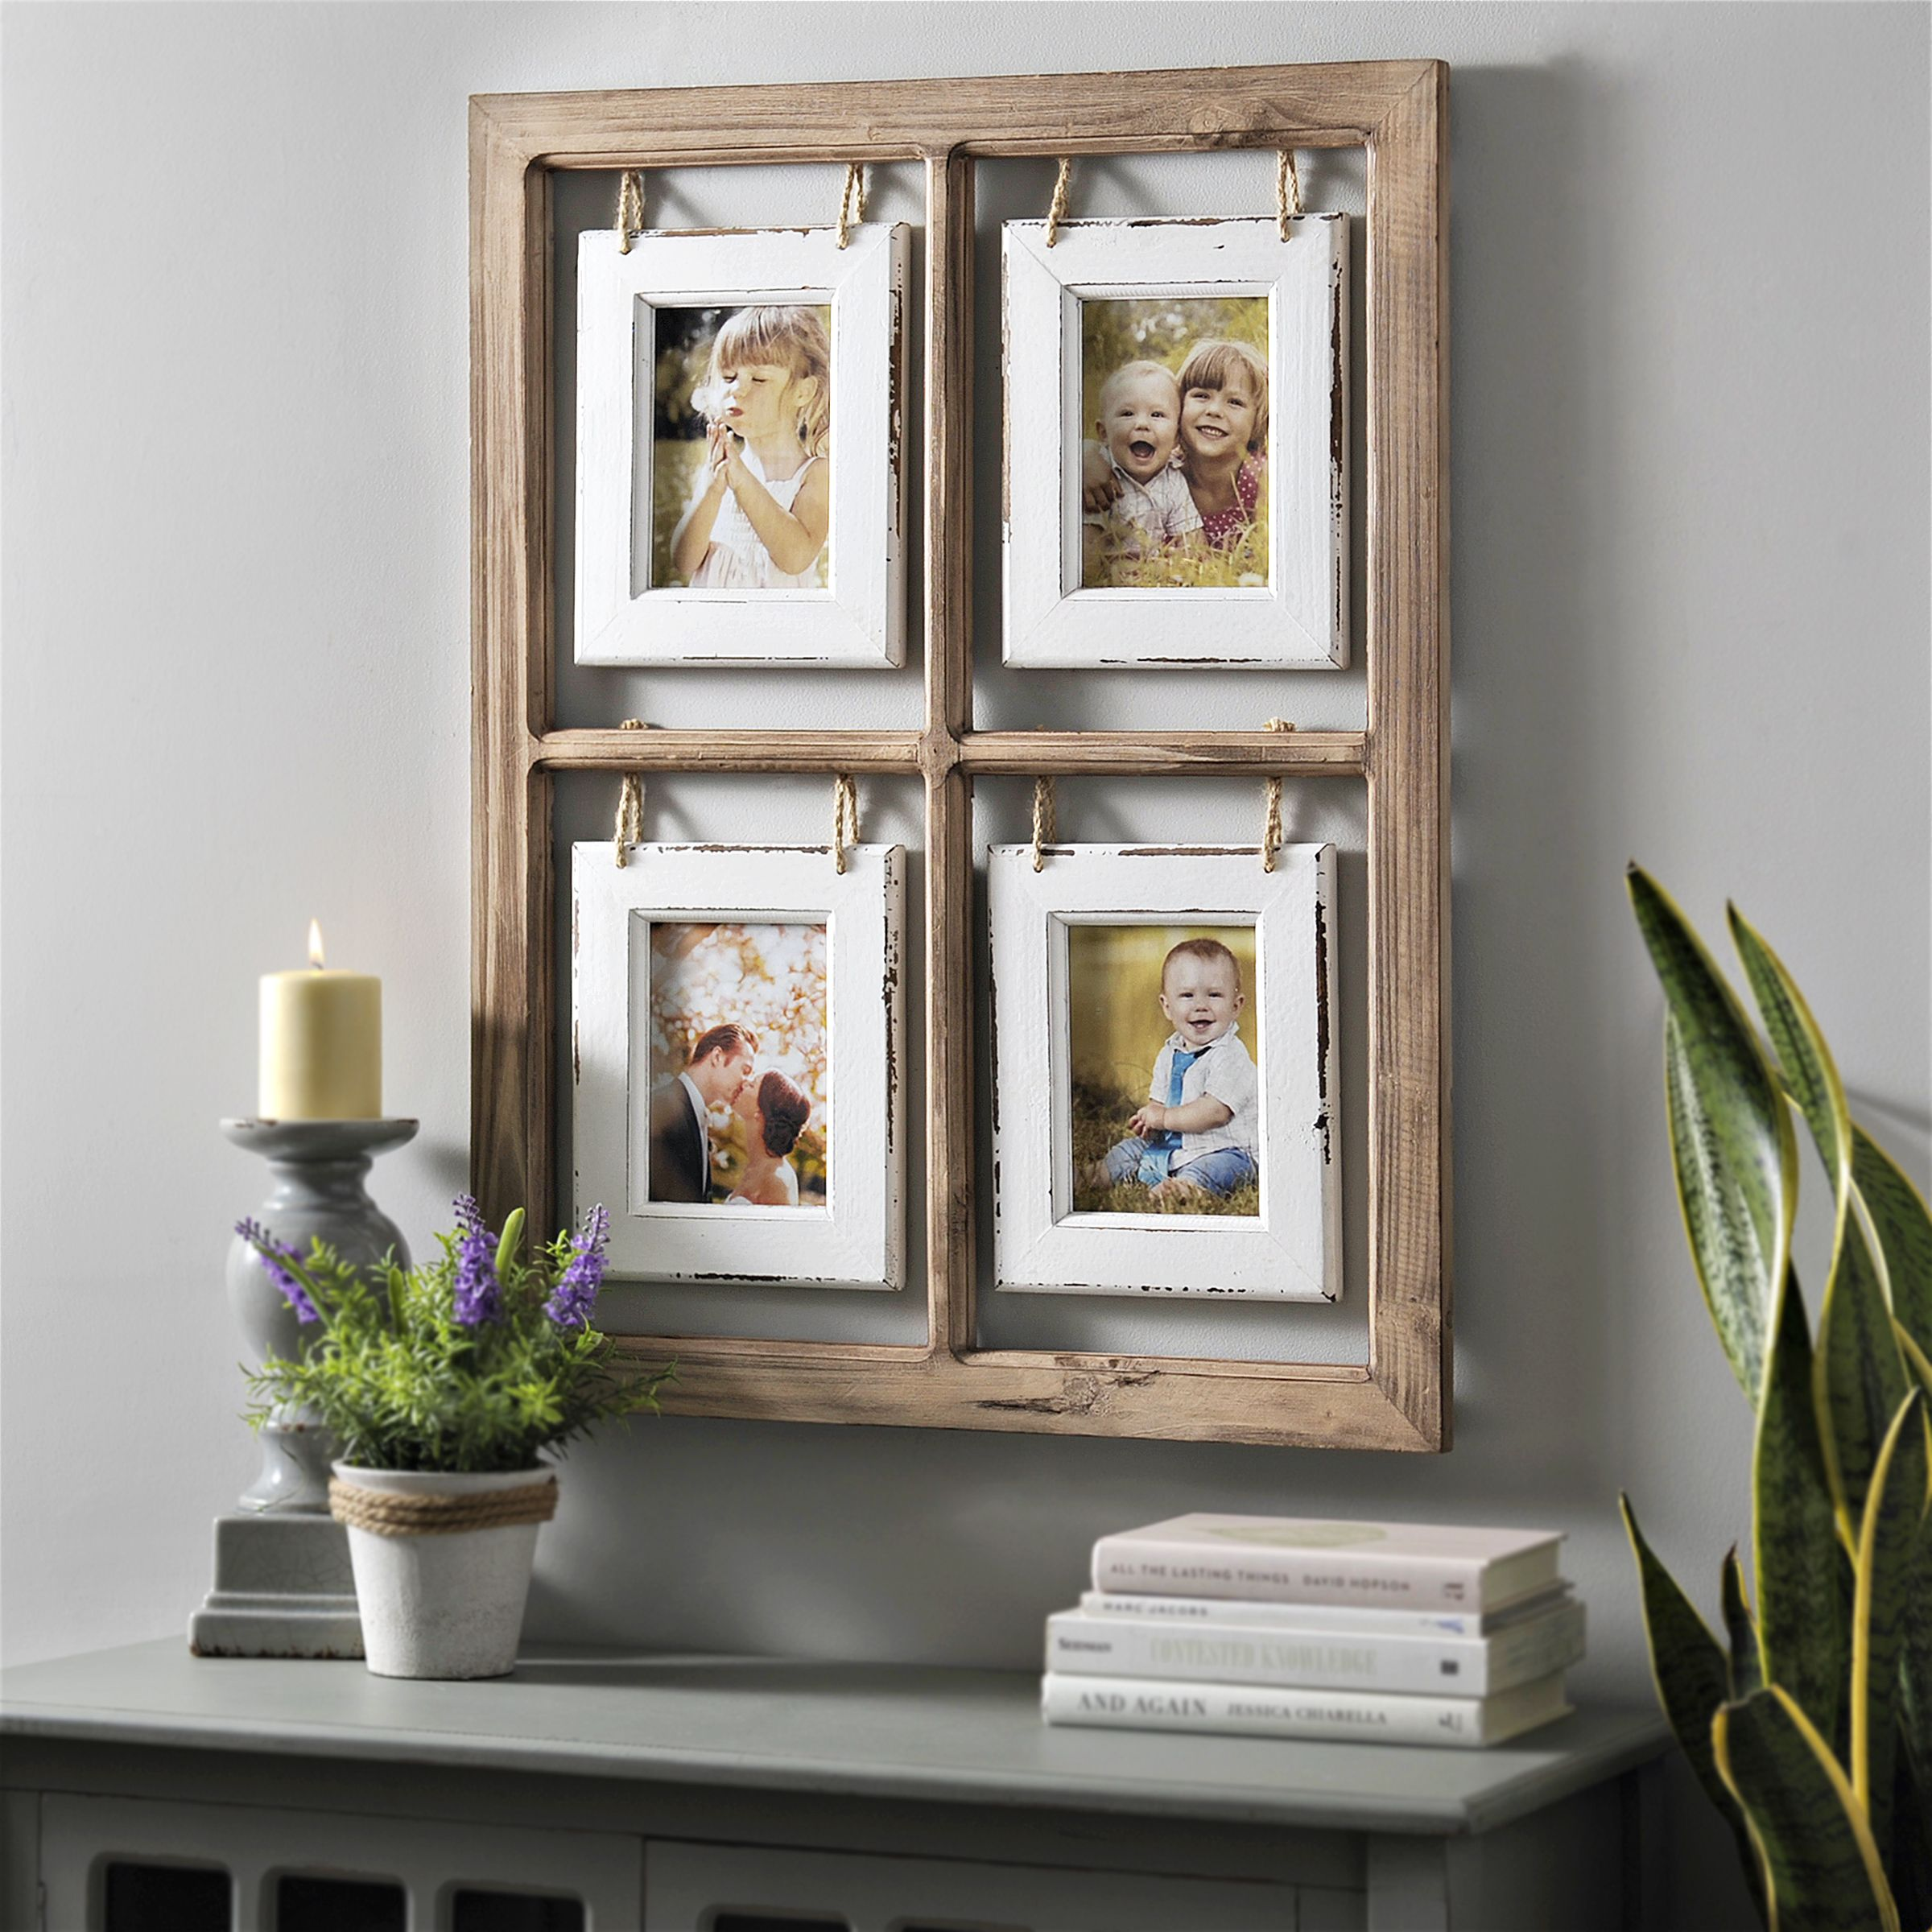 Natural Hanging Window Pane Collage Frame Whimsical